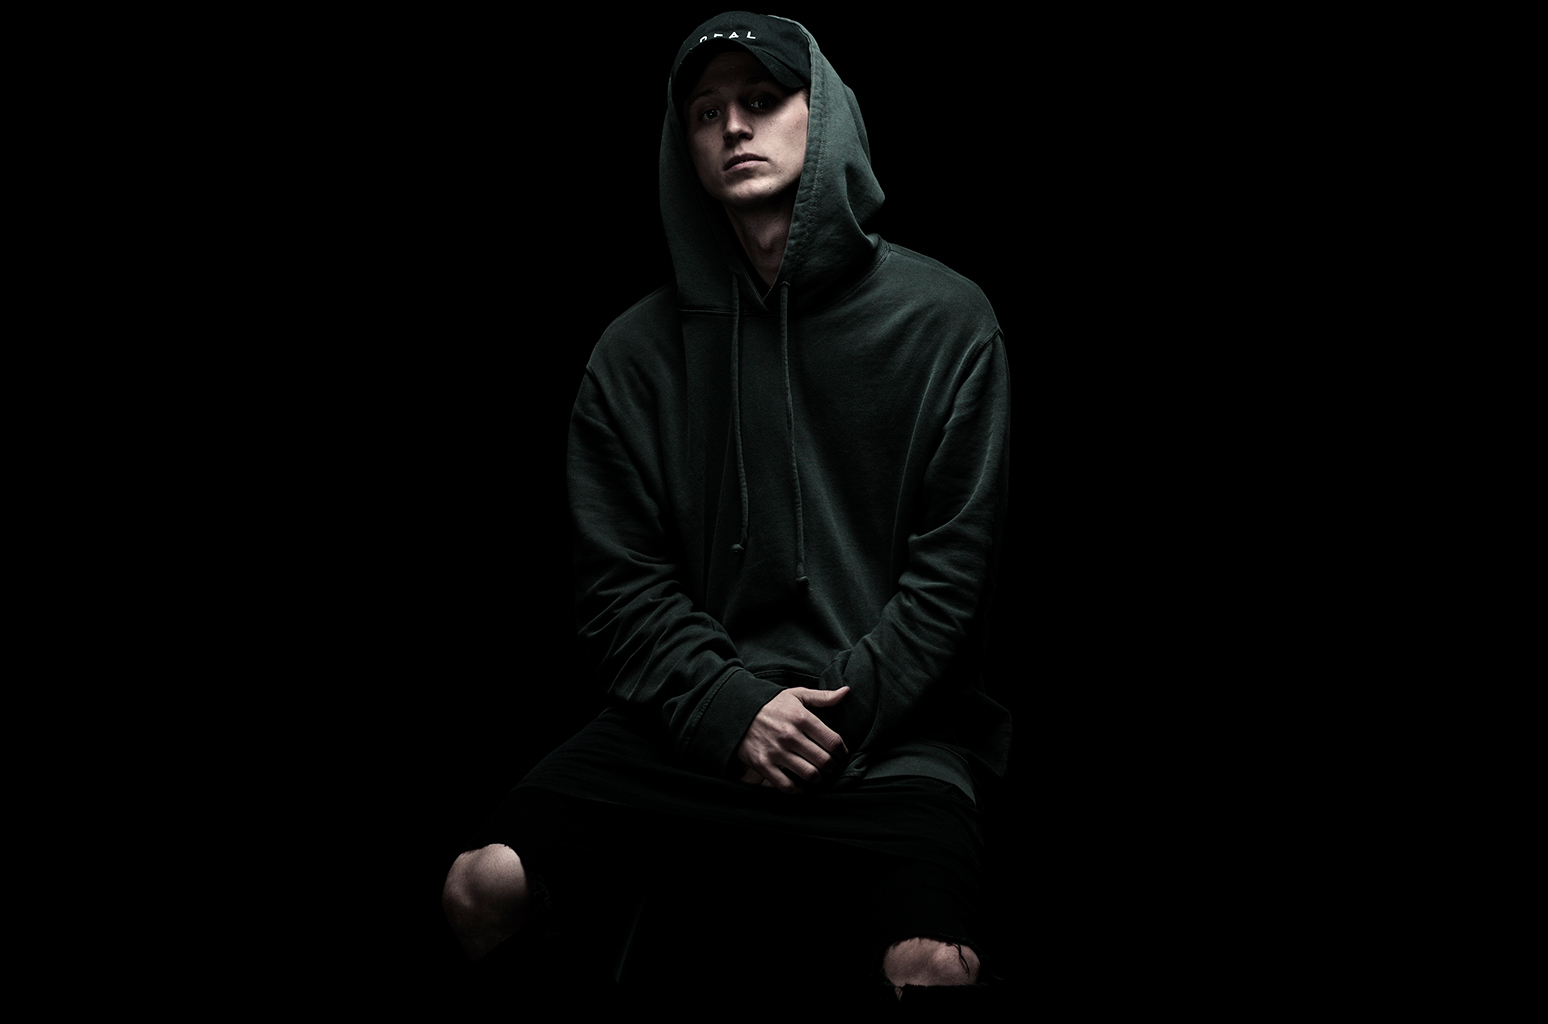 NF-rapper-press-photo-by-Jon_Taylor-Sweet-2017-billboard-1548.jpg